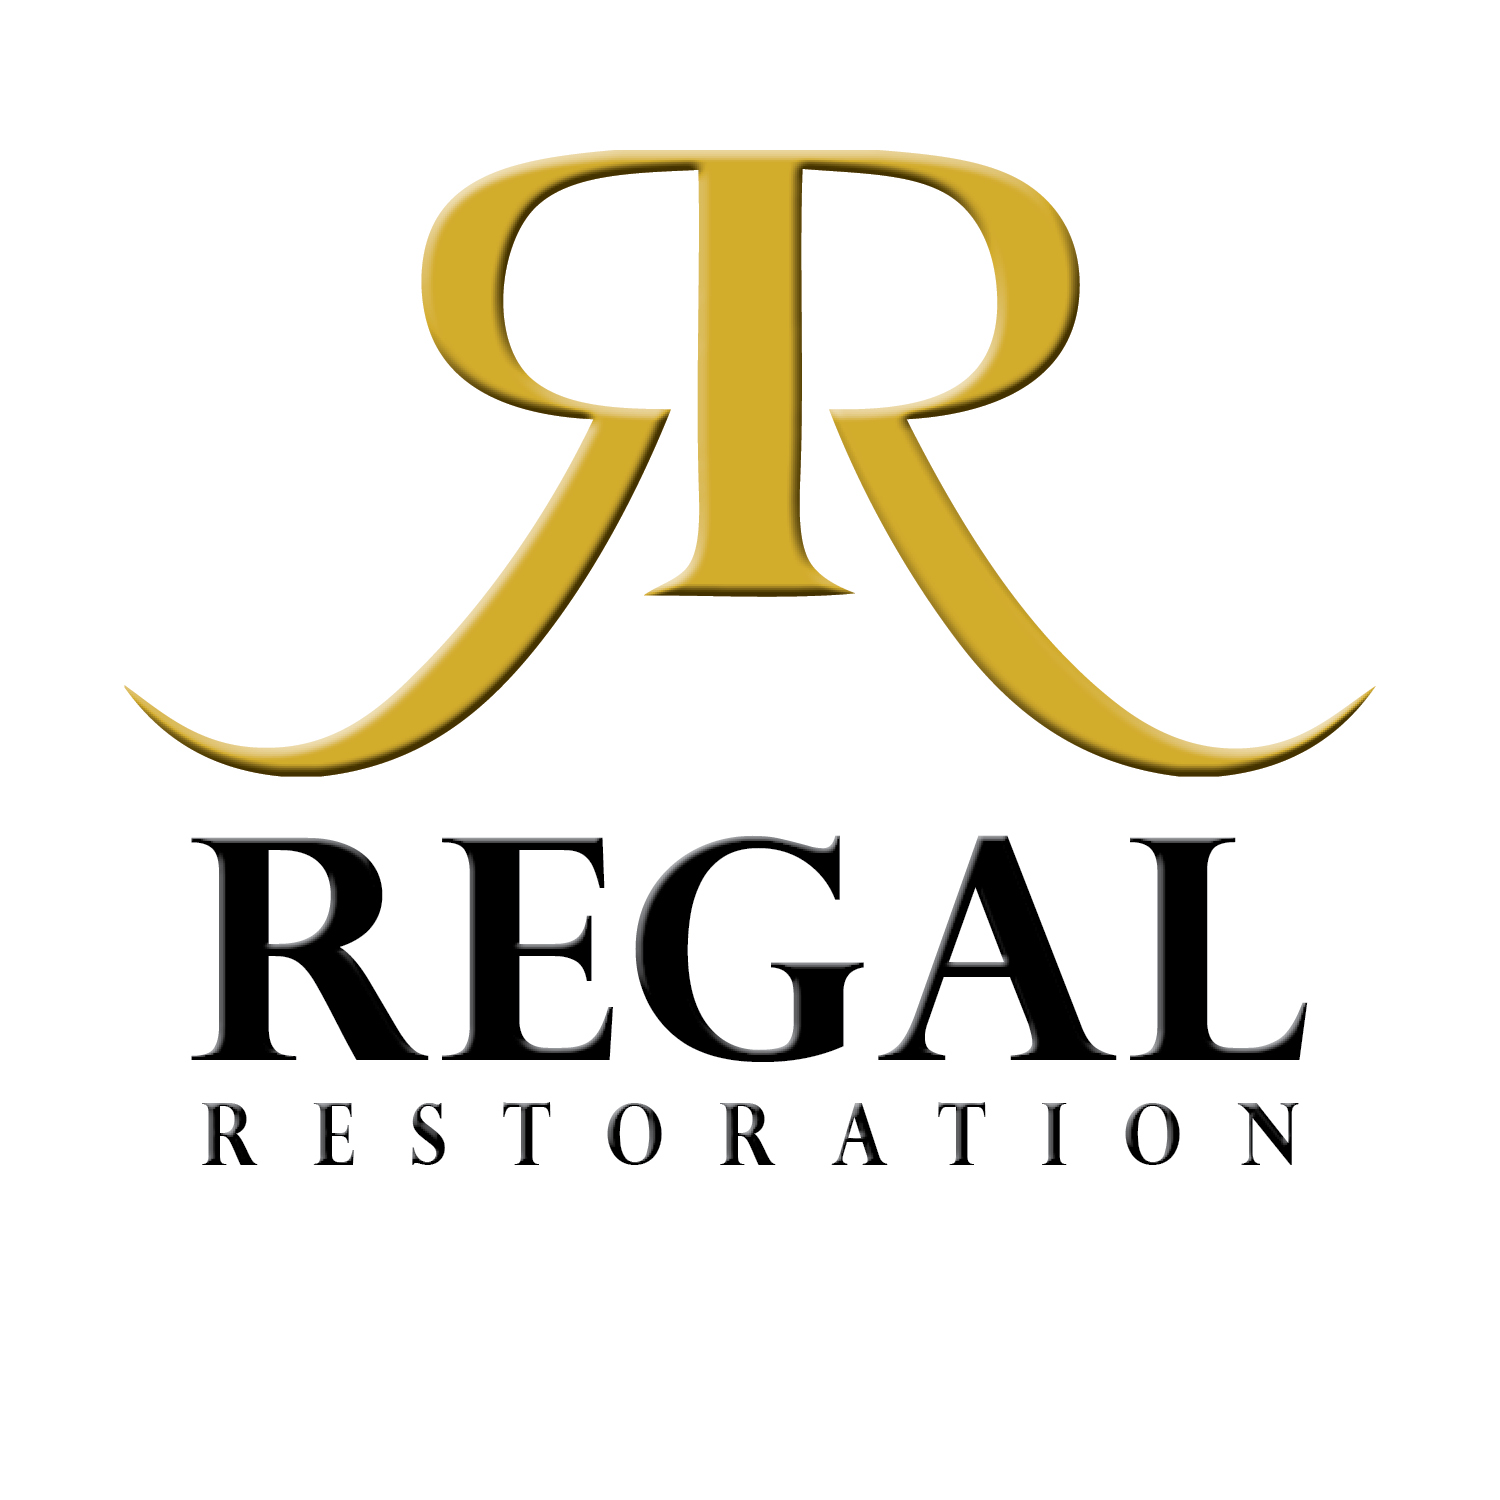 REGAL RESTORATION LOGO